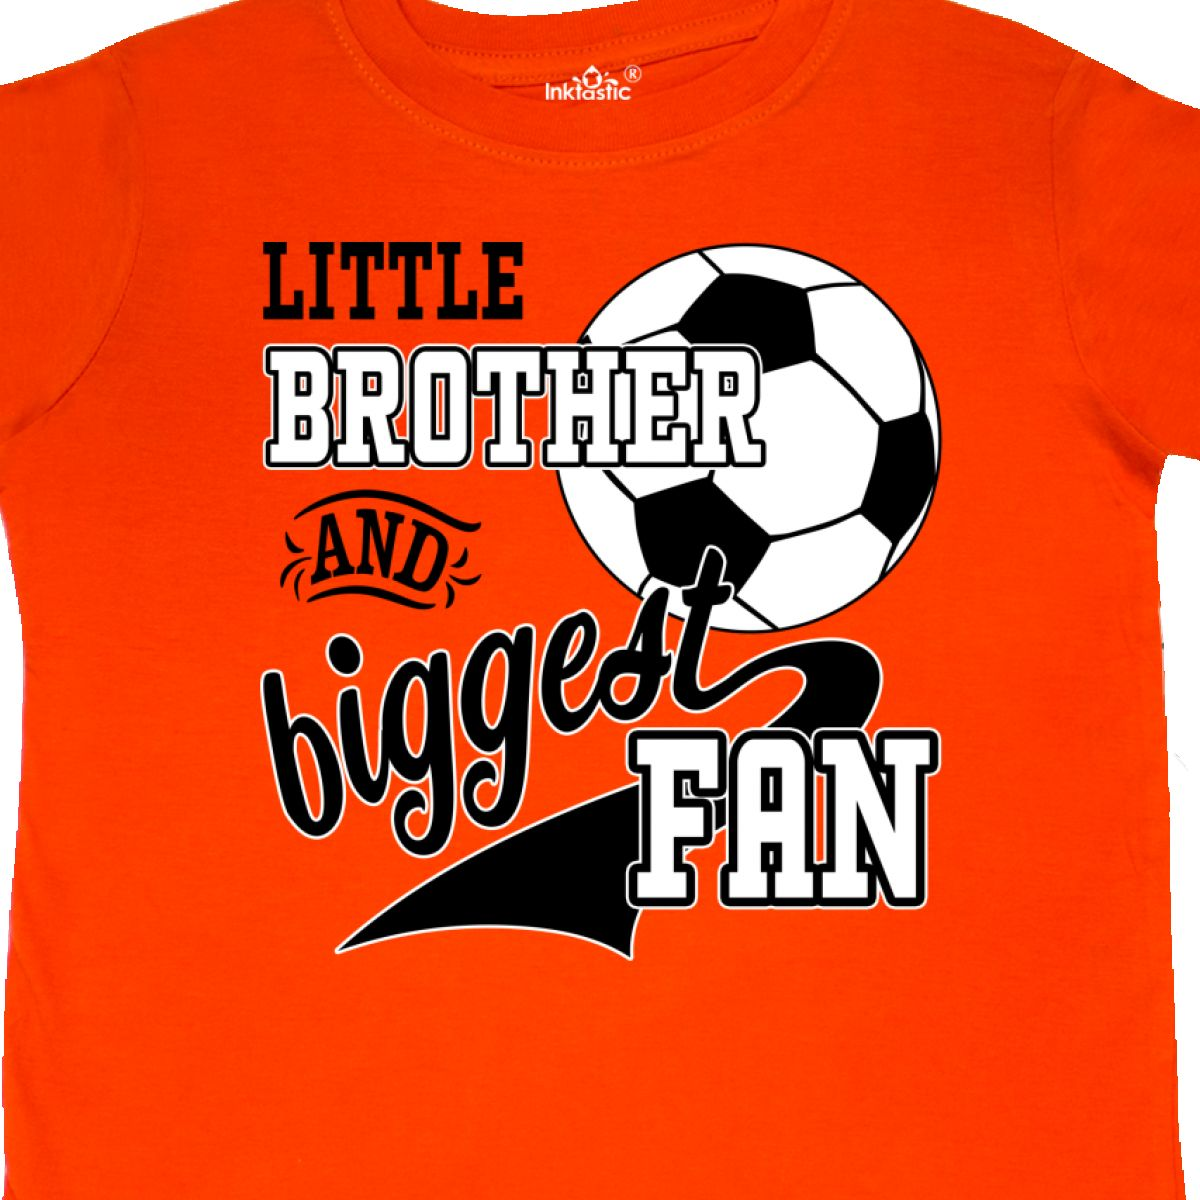 Inktastic-Little-Brother-And-Biggest-Fan-Soccer-Player-Toddler-T-Shirt-Sports thumbnail 12